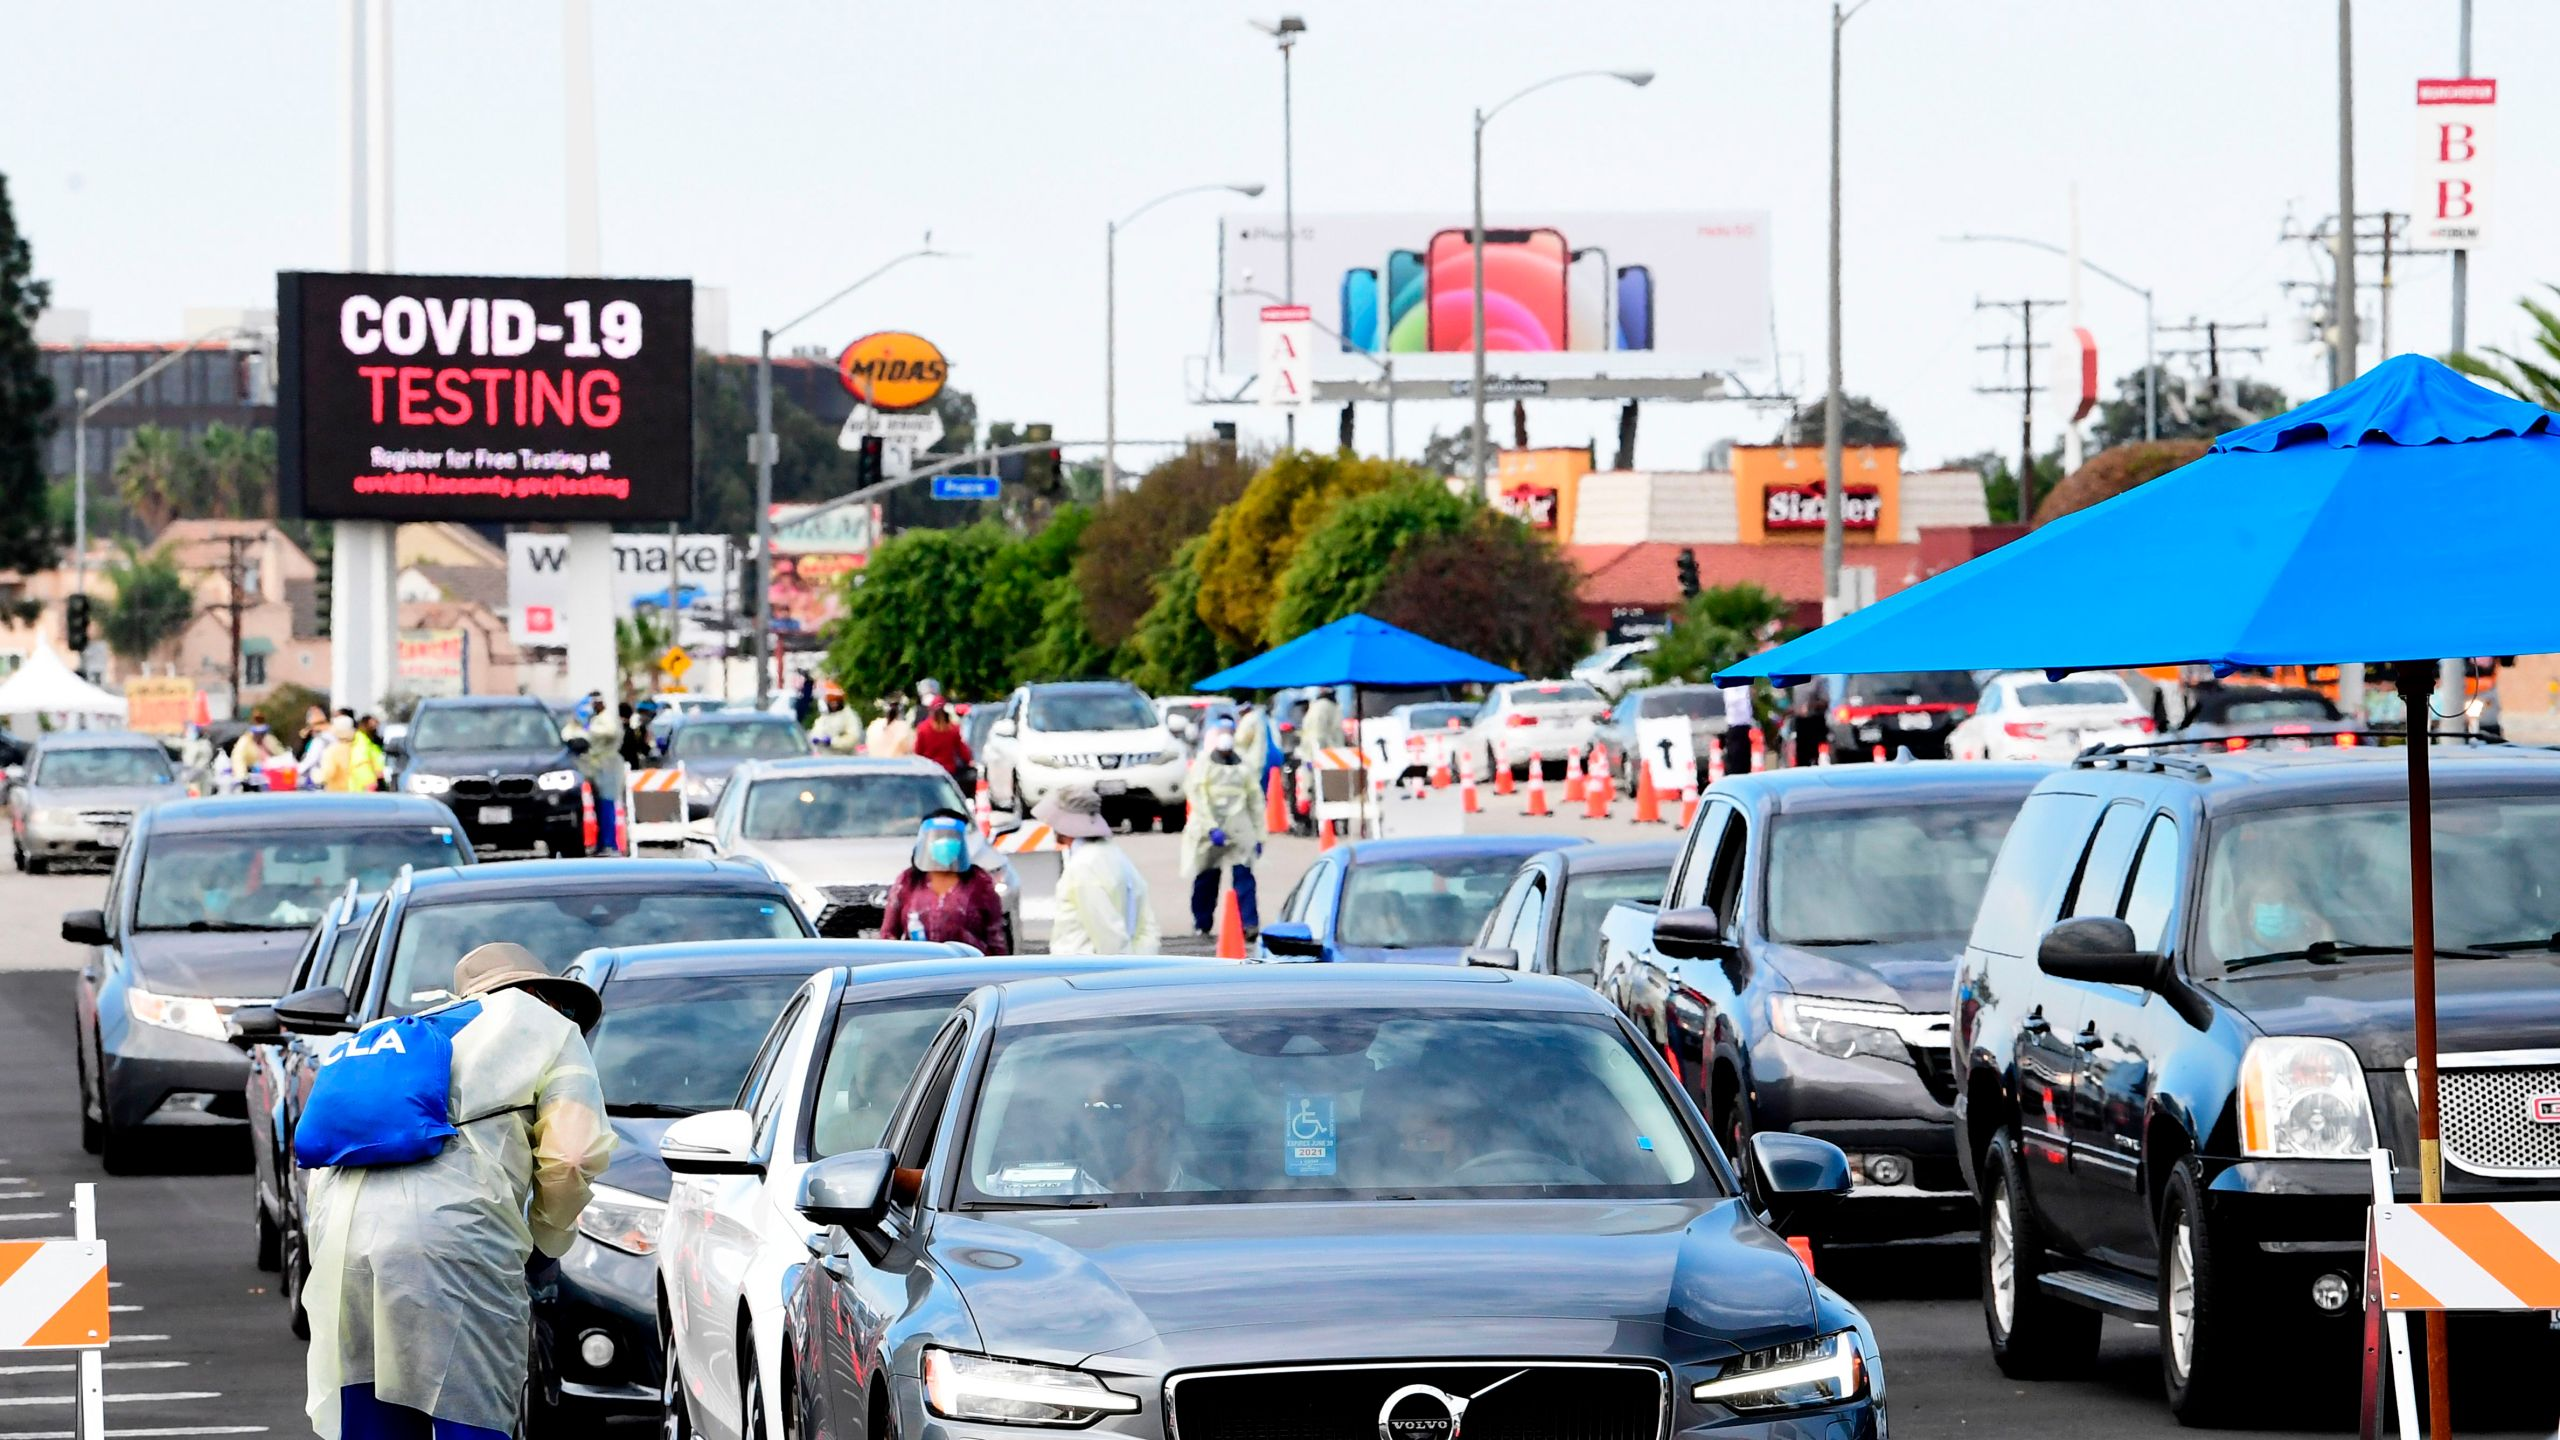 People pull up in their vehicles for COVID-19 vaccines in the parking lot of The Forum in Inglewood on Jan. 19, 2021. (FREDERIC J. BROWN/AFP via Getty Images)